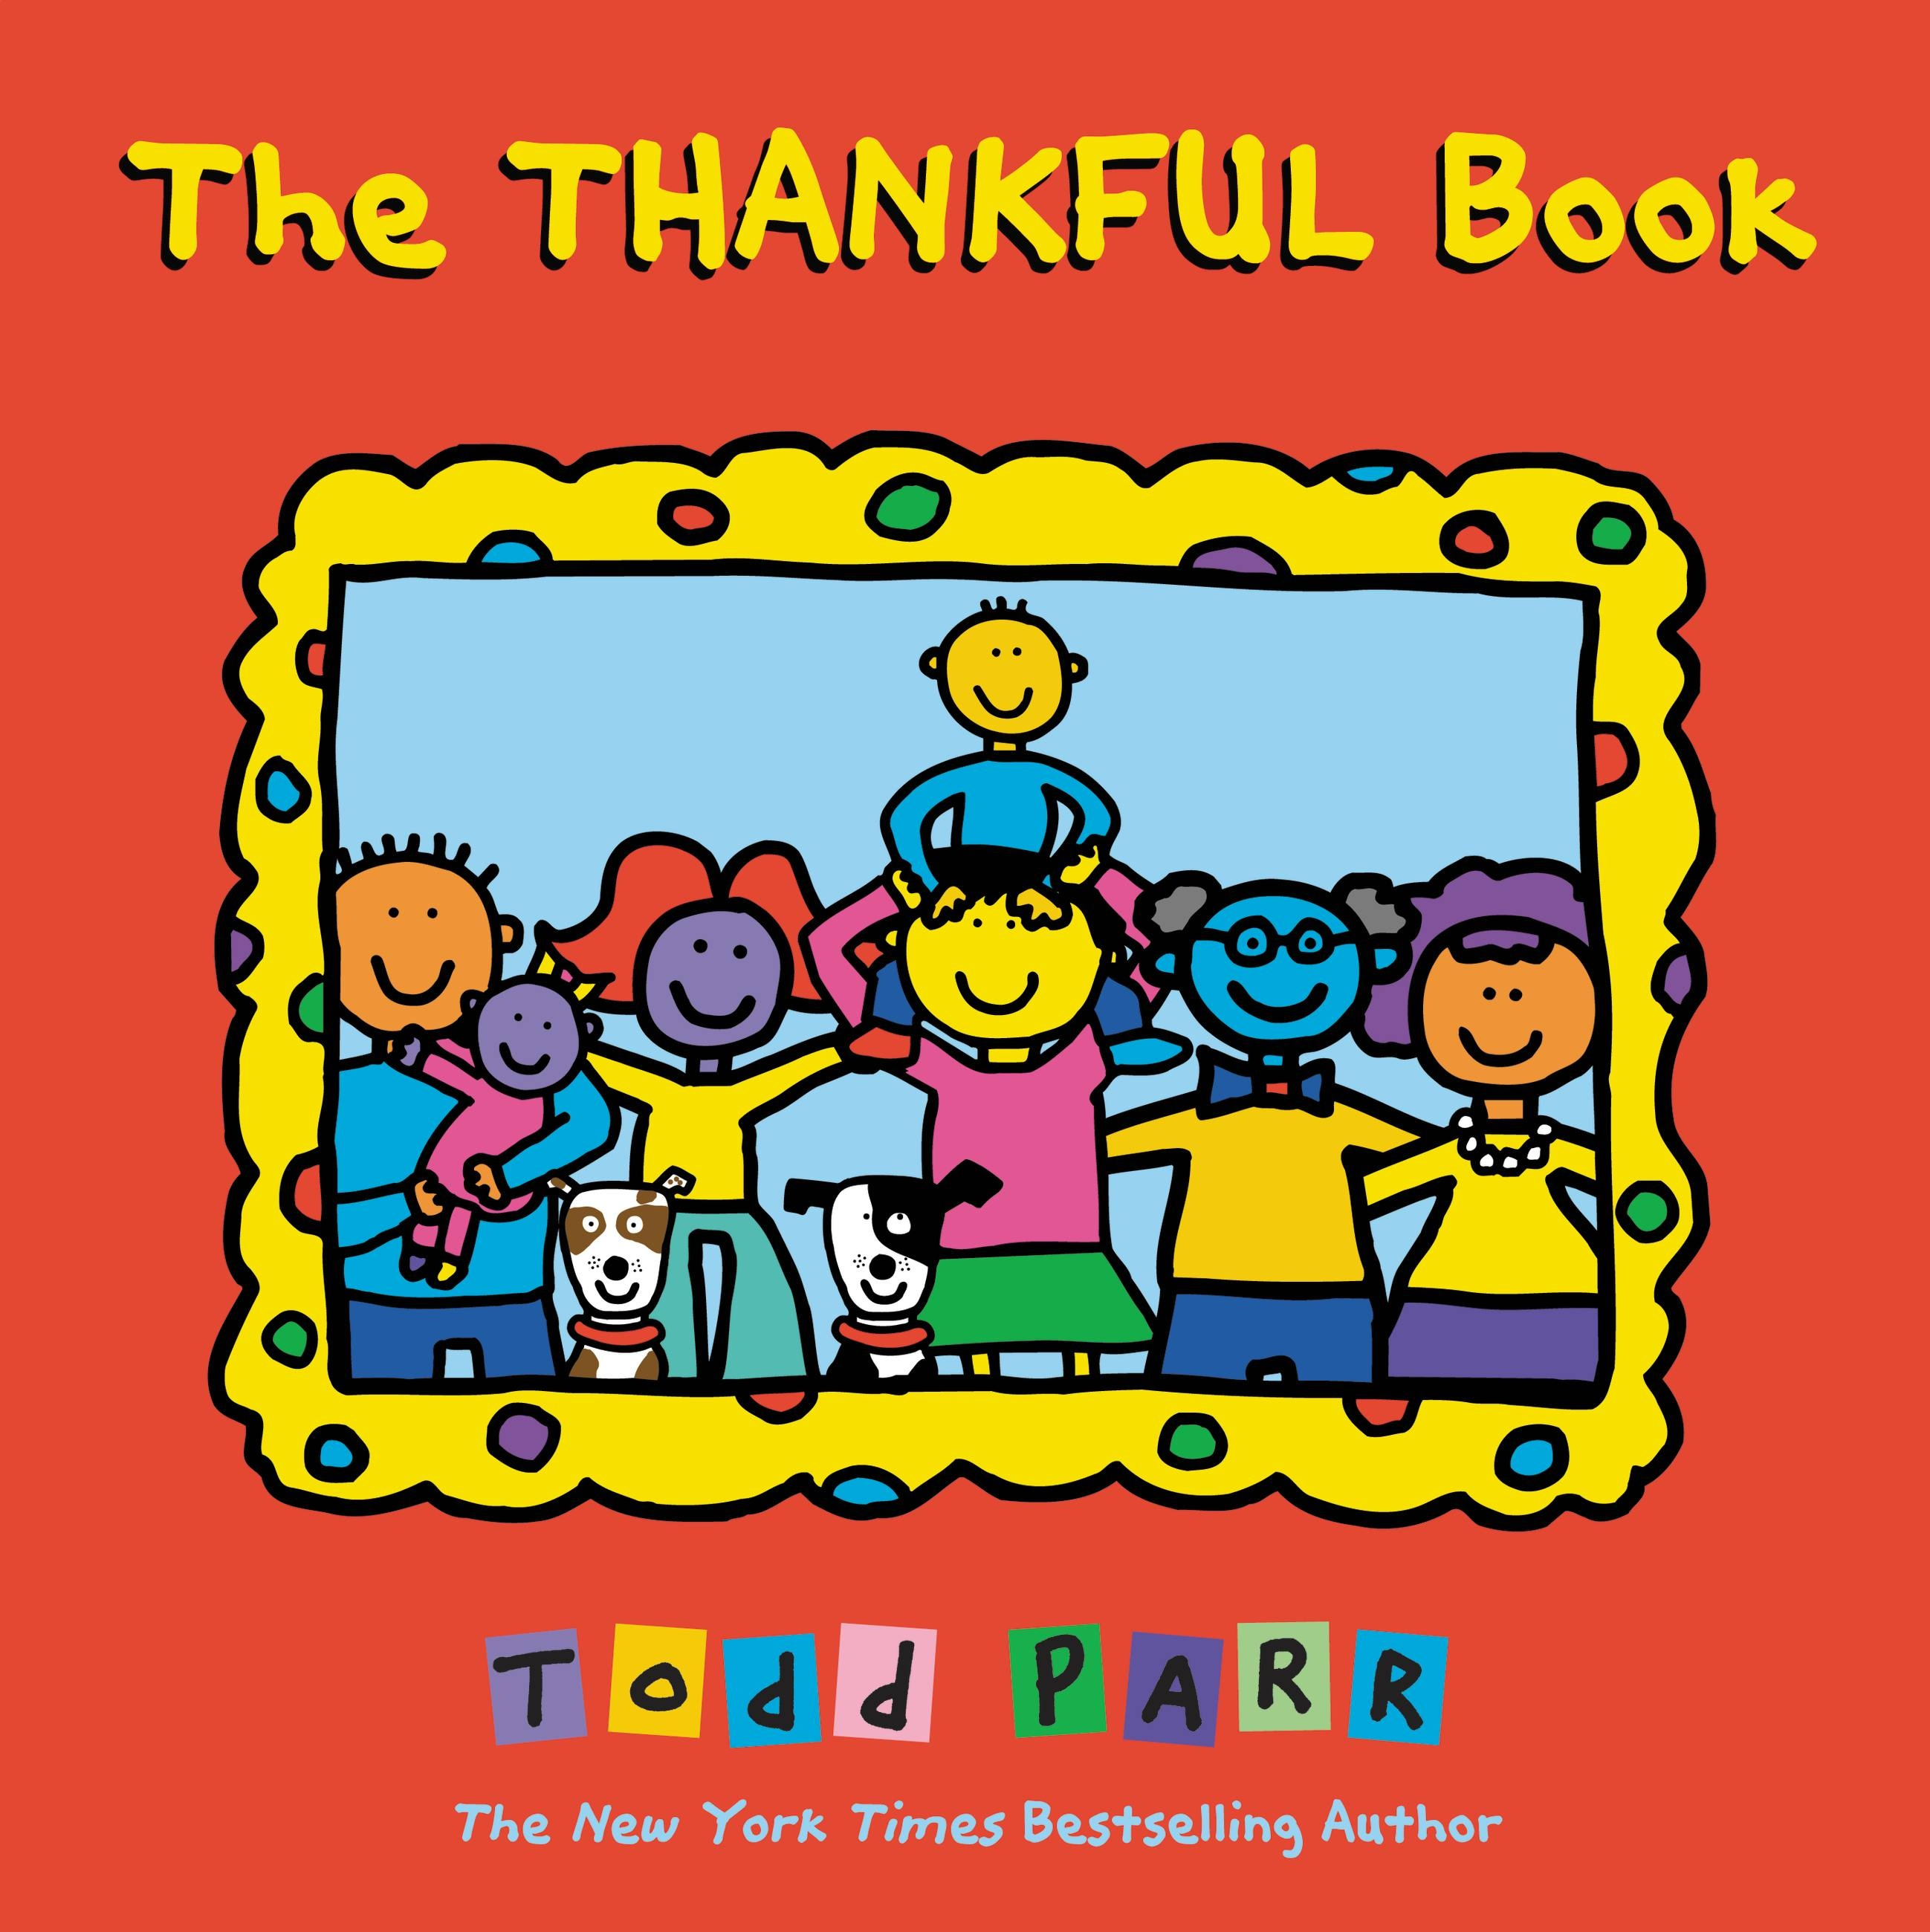 The Thankful Book by Todd Parr | Hachette Book Group